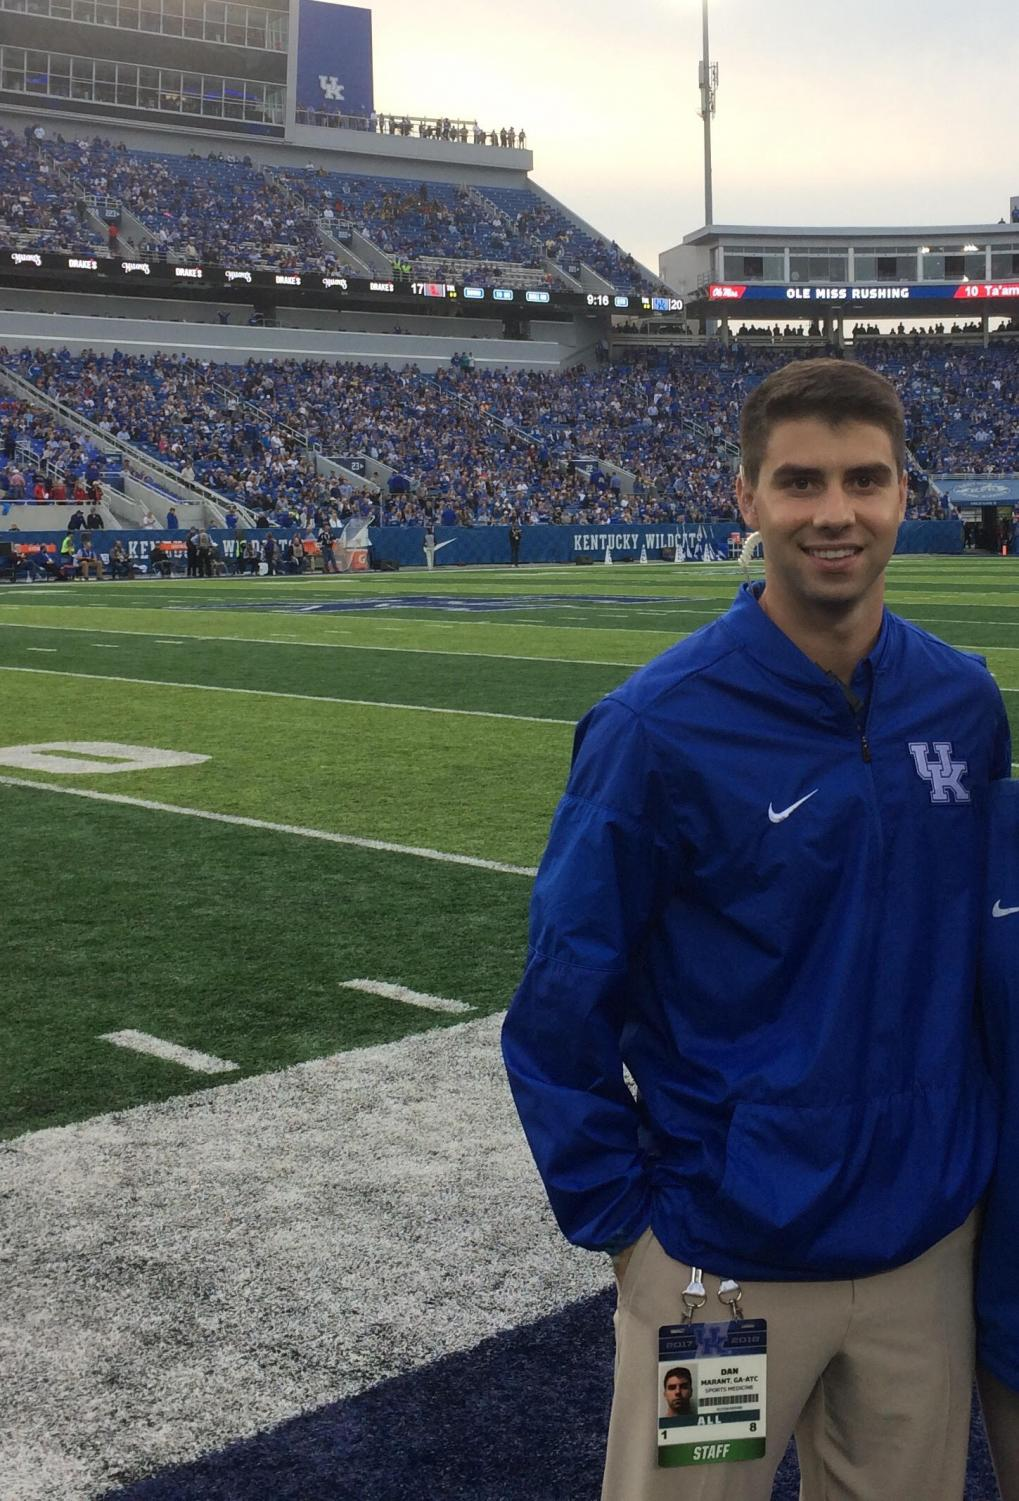 Marant is studying at University of Kentucky to get his Master's in Athletic Training.